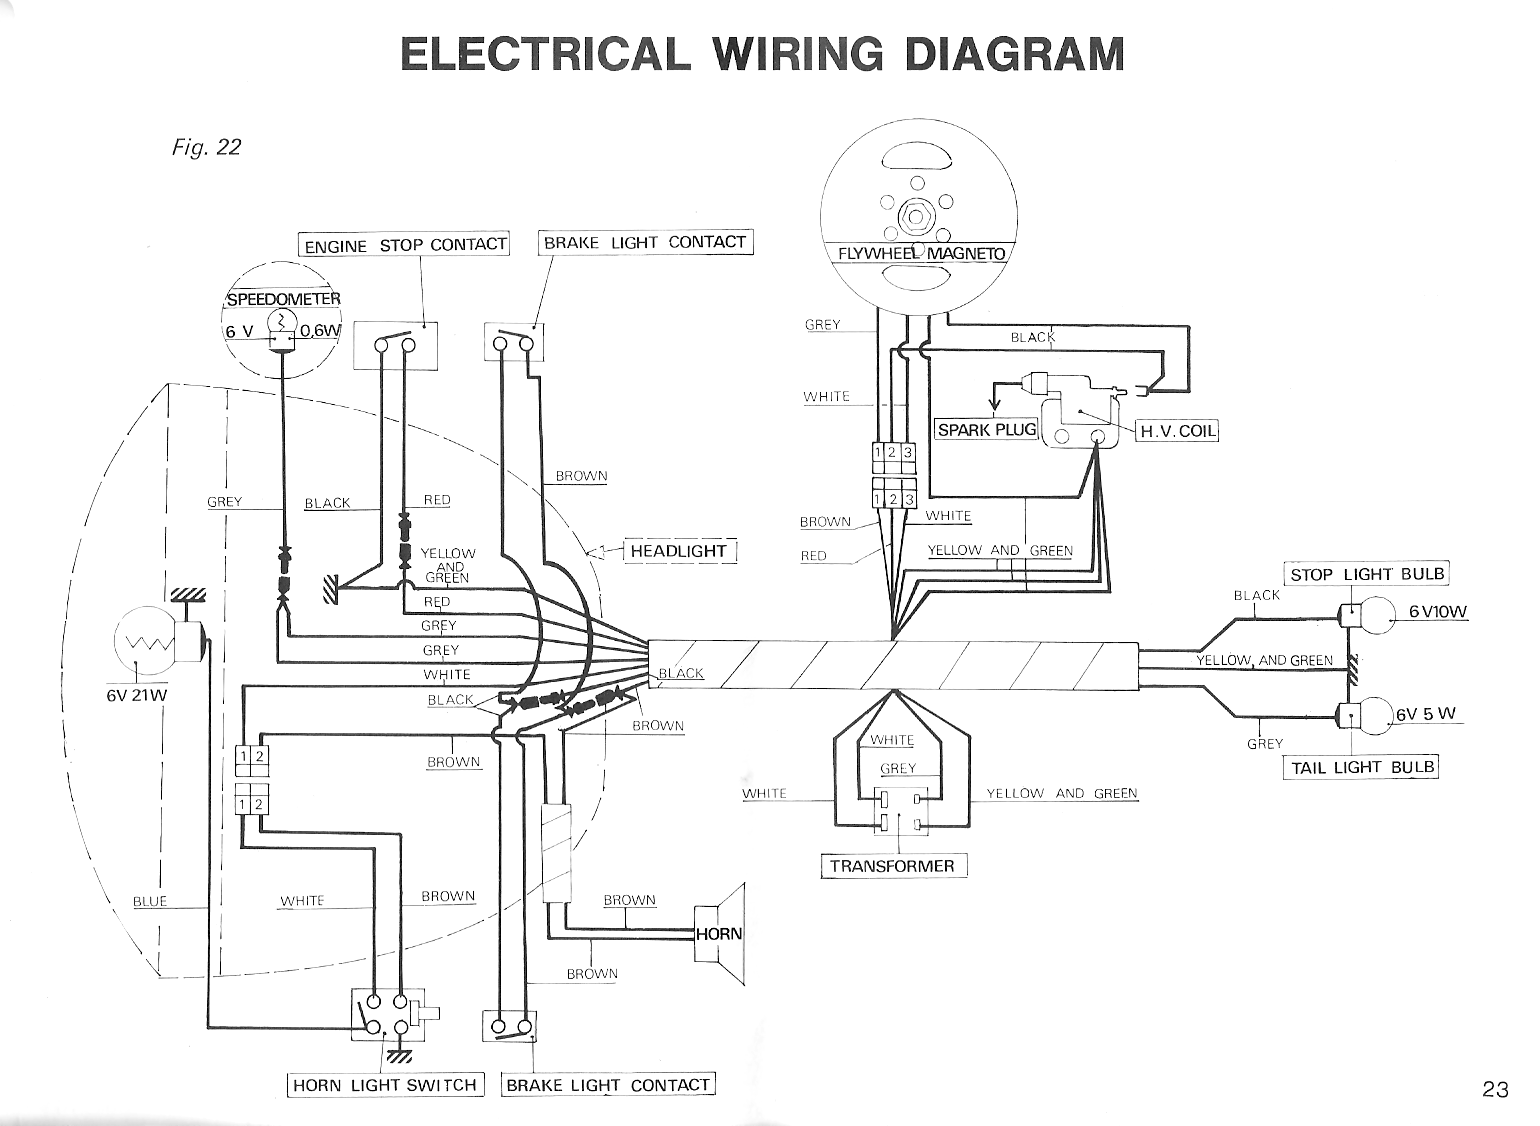 peugeot wiring diagrams moped wiki rh mopedarmy com Residential Electrical Wiring Diagrams Basic Electrical Schematic Diagrams